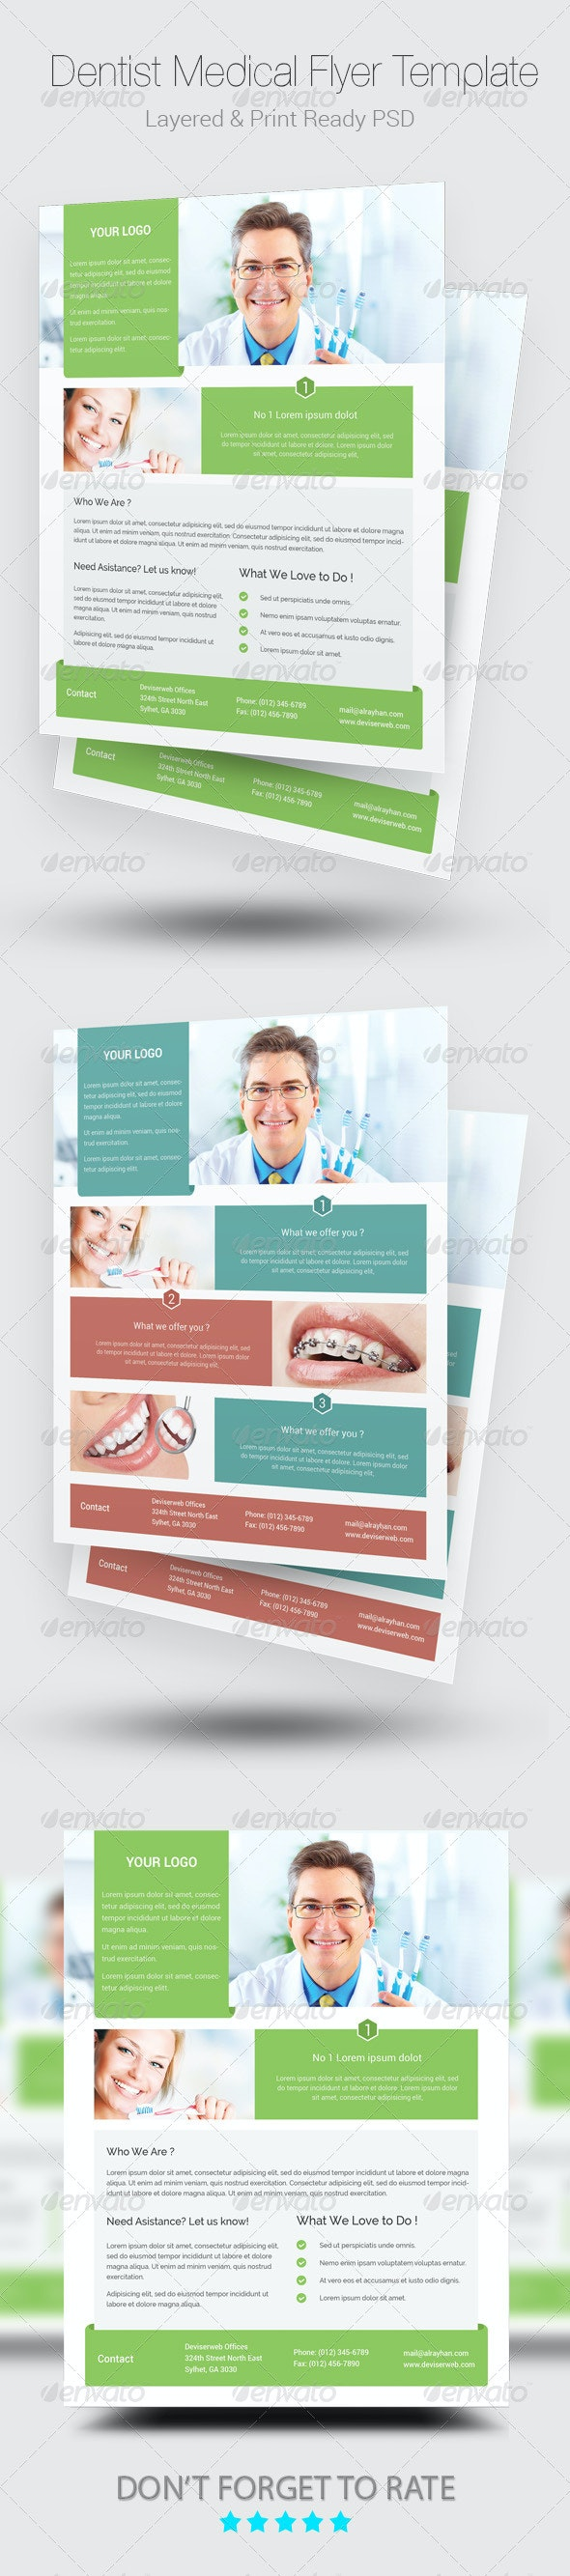 Medical Dentist Flyer Templates - Corporate Flyers